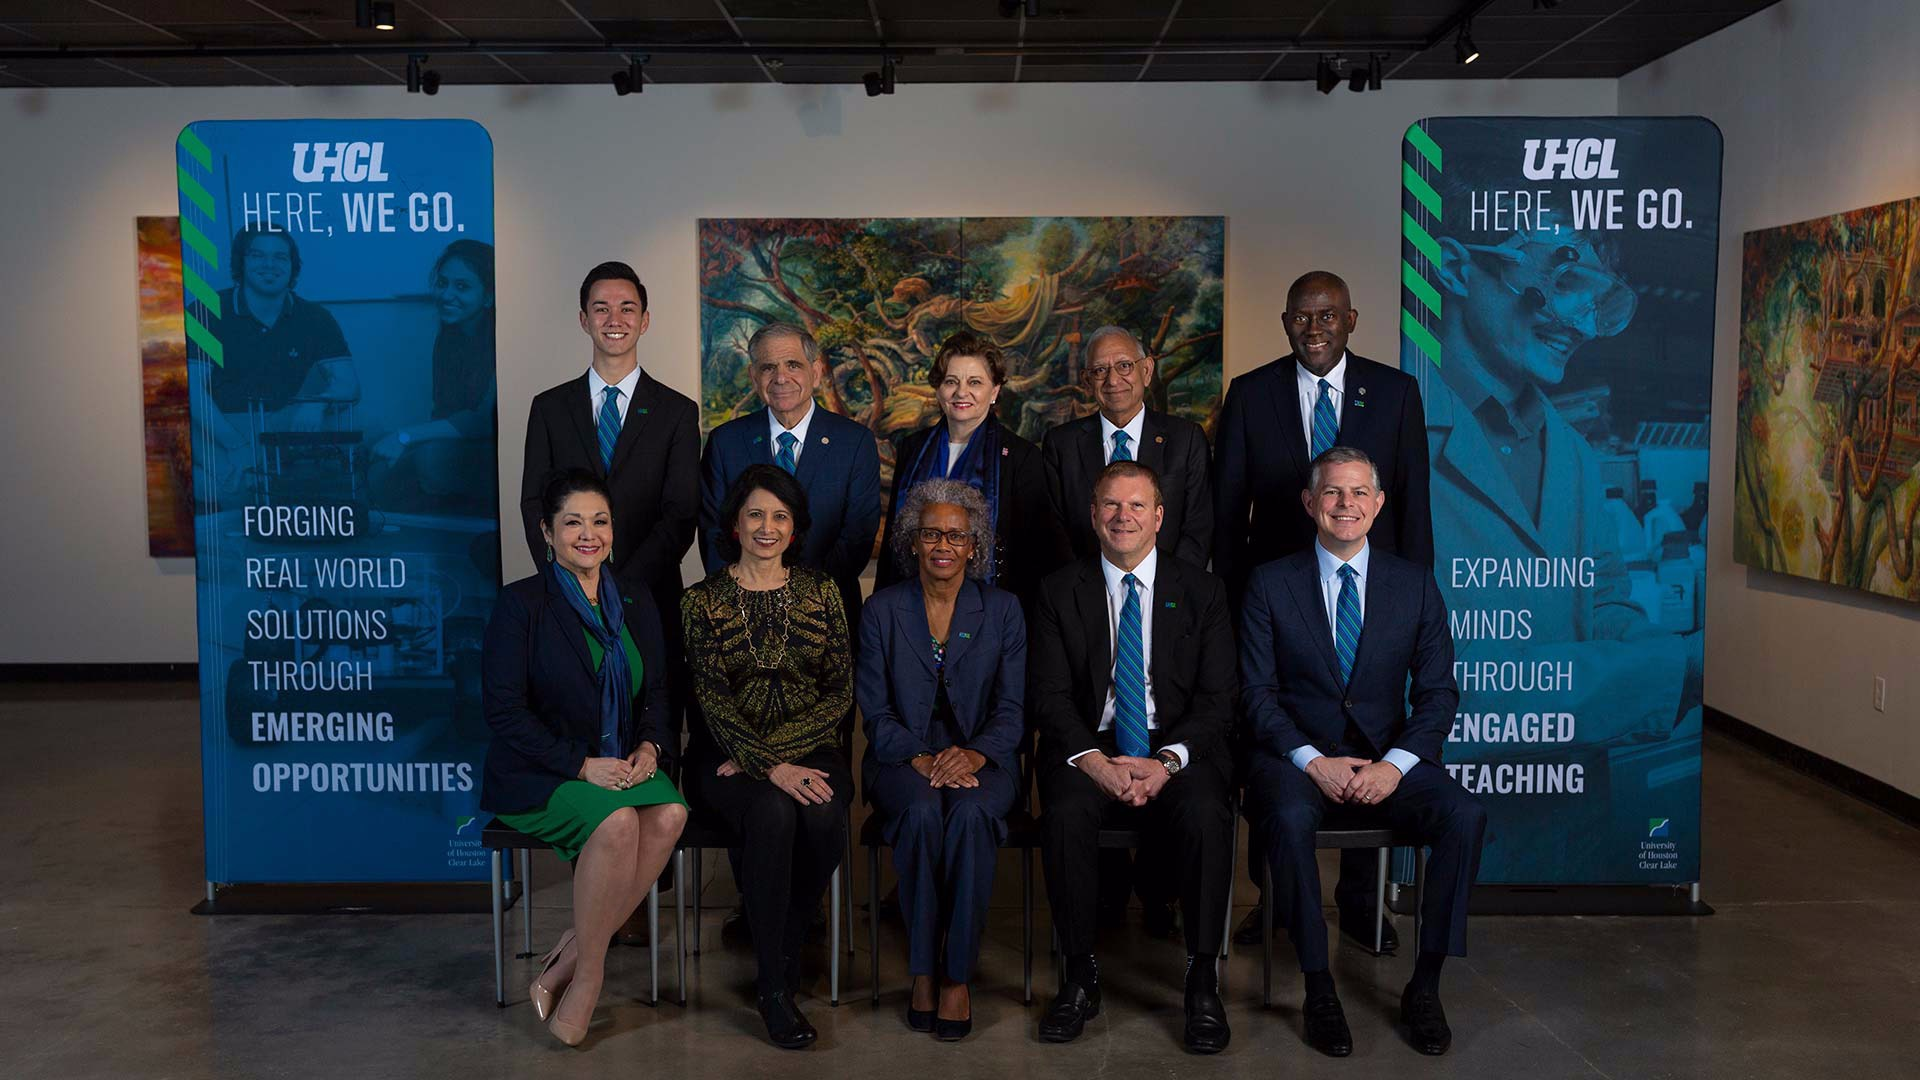 UHCL hosts UH System Board of Regents meeting